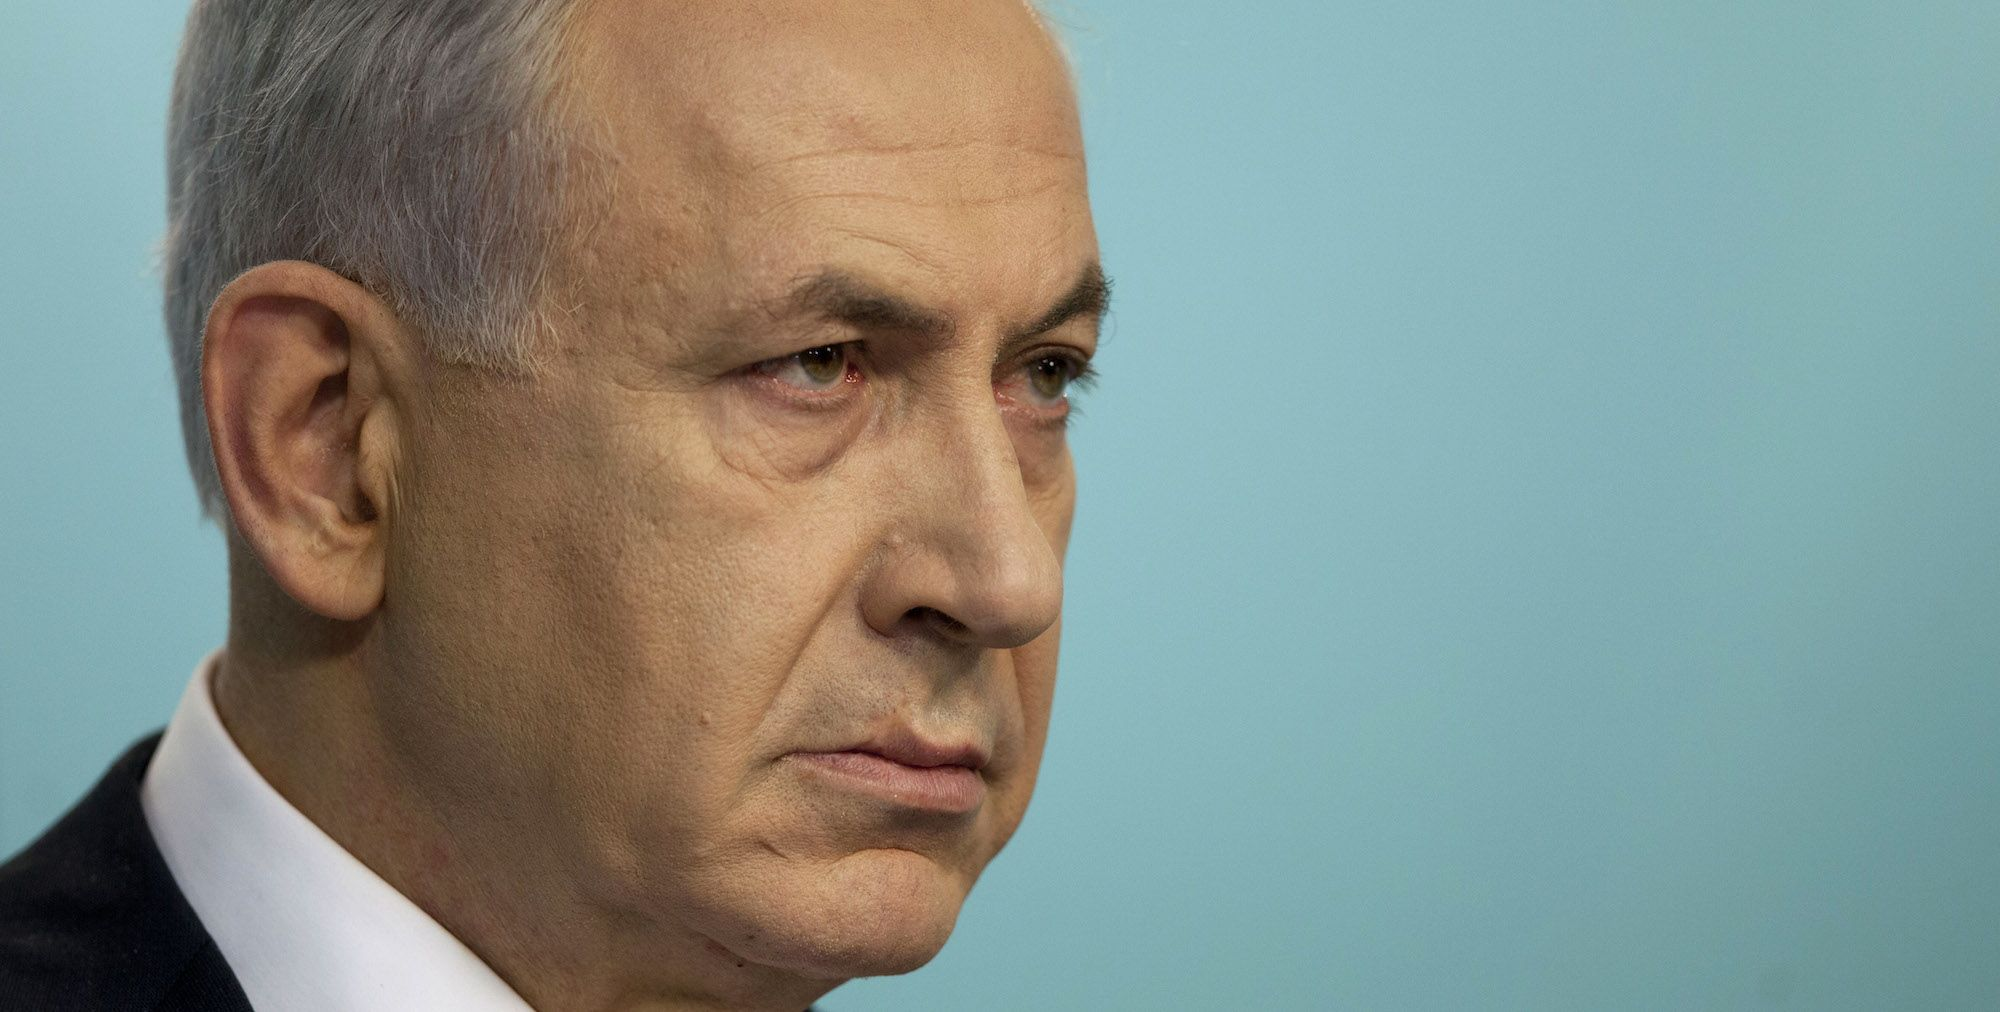 Israeli Prime Minister Benjamin Netanyahu Could Technically Be Arrested if He Steps Foot in Spain